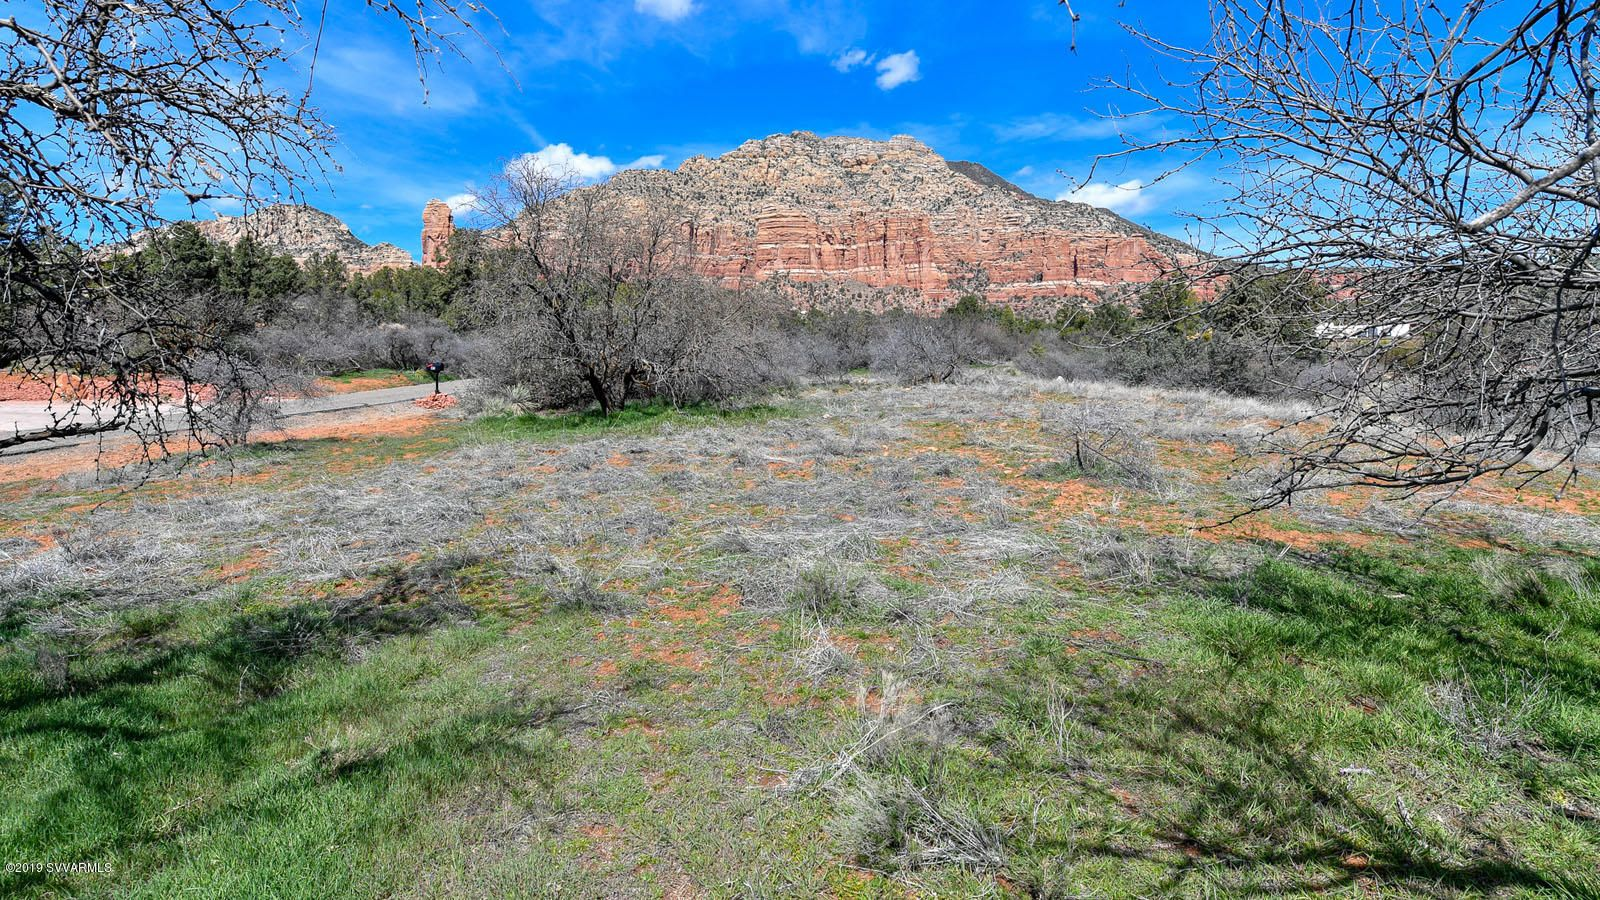 40 Longwood Sedona Az 86351 Mls 519084 The Perfect Site For Your Future Dream Home This 68 Oversized Building Lot In Pine Sedona Flood Zone Longwood